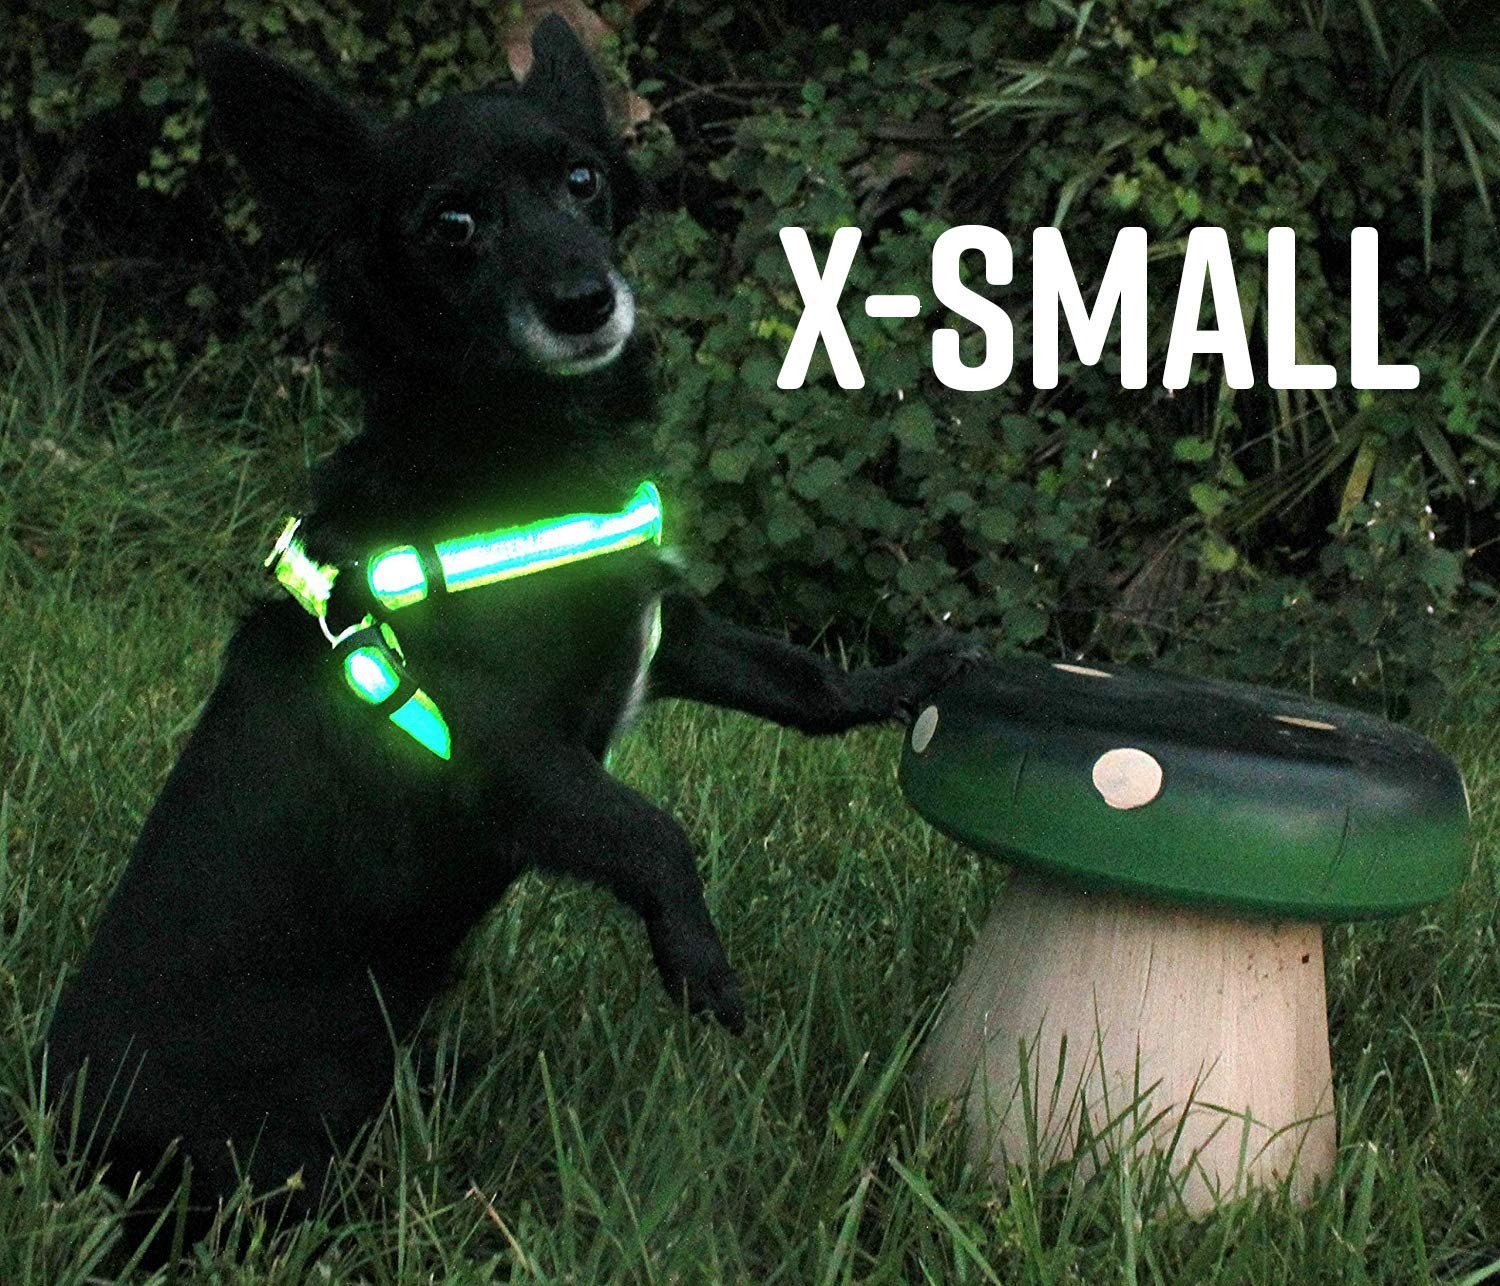 Small LED Dog Harness No-Pull, USB Rechargeable Outdoor Lightweight Reflective Pet Vest Harness with & Adjustable Belt Suit for Small, Medium, Large Dogs Green (Small)